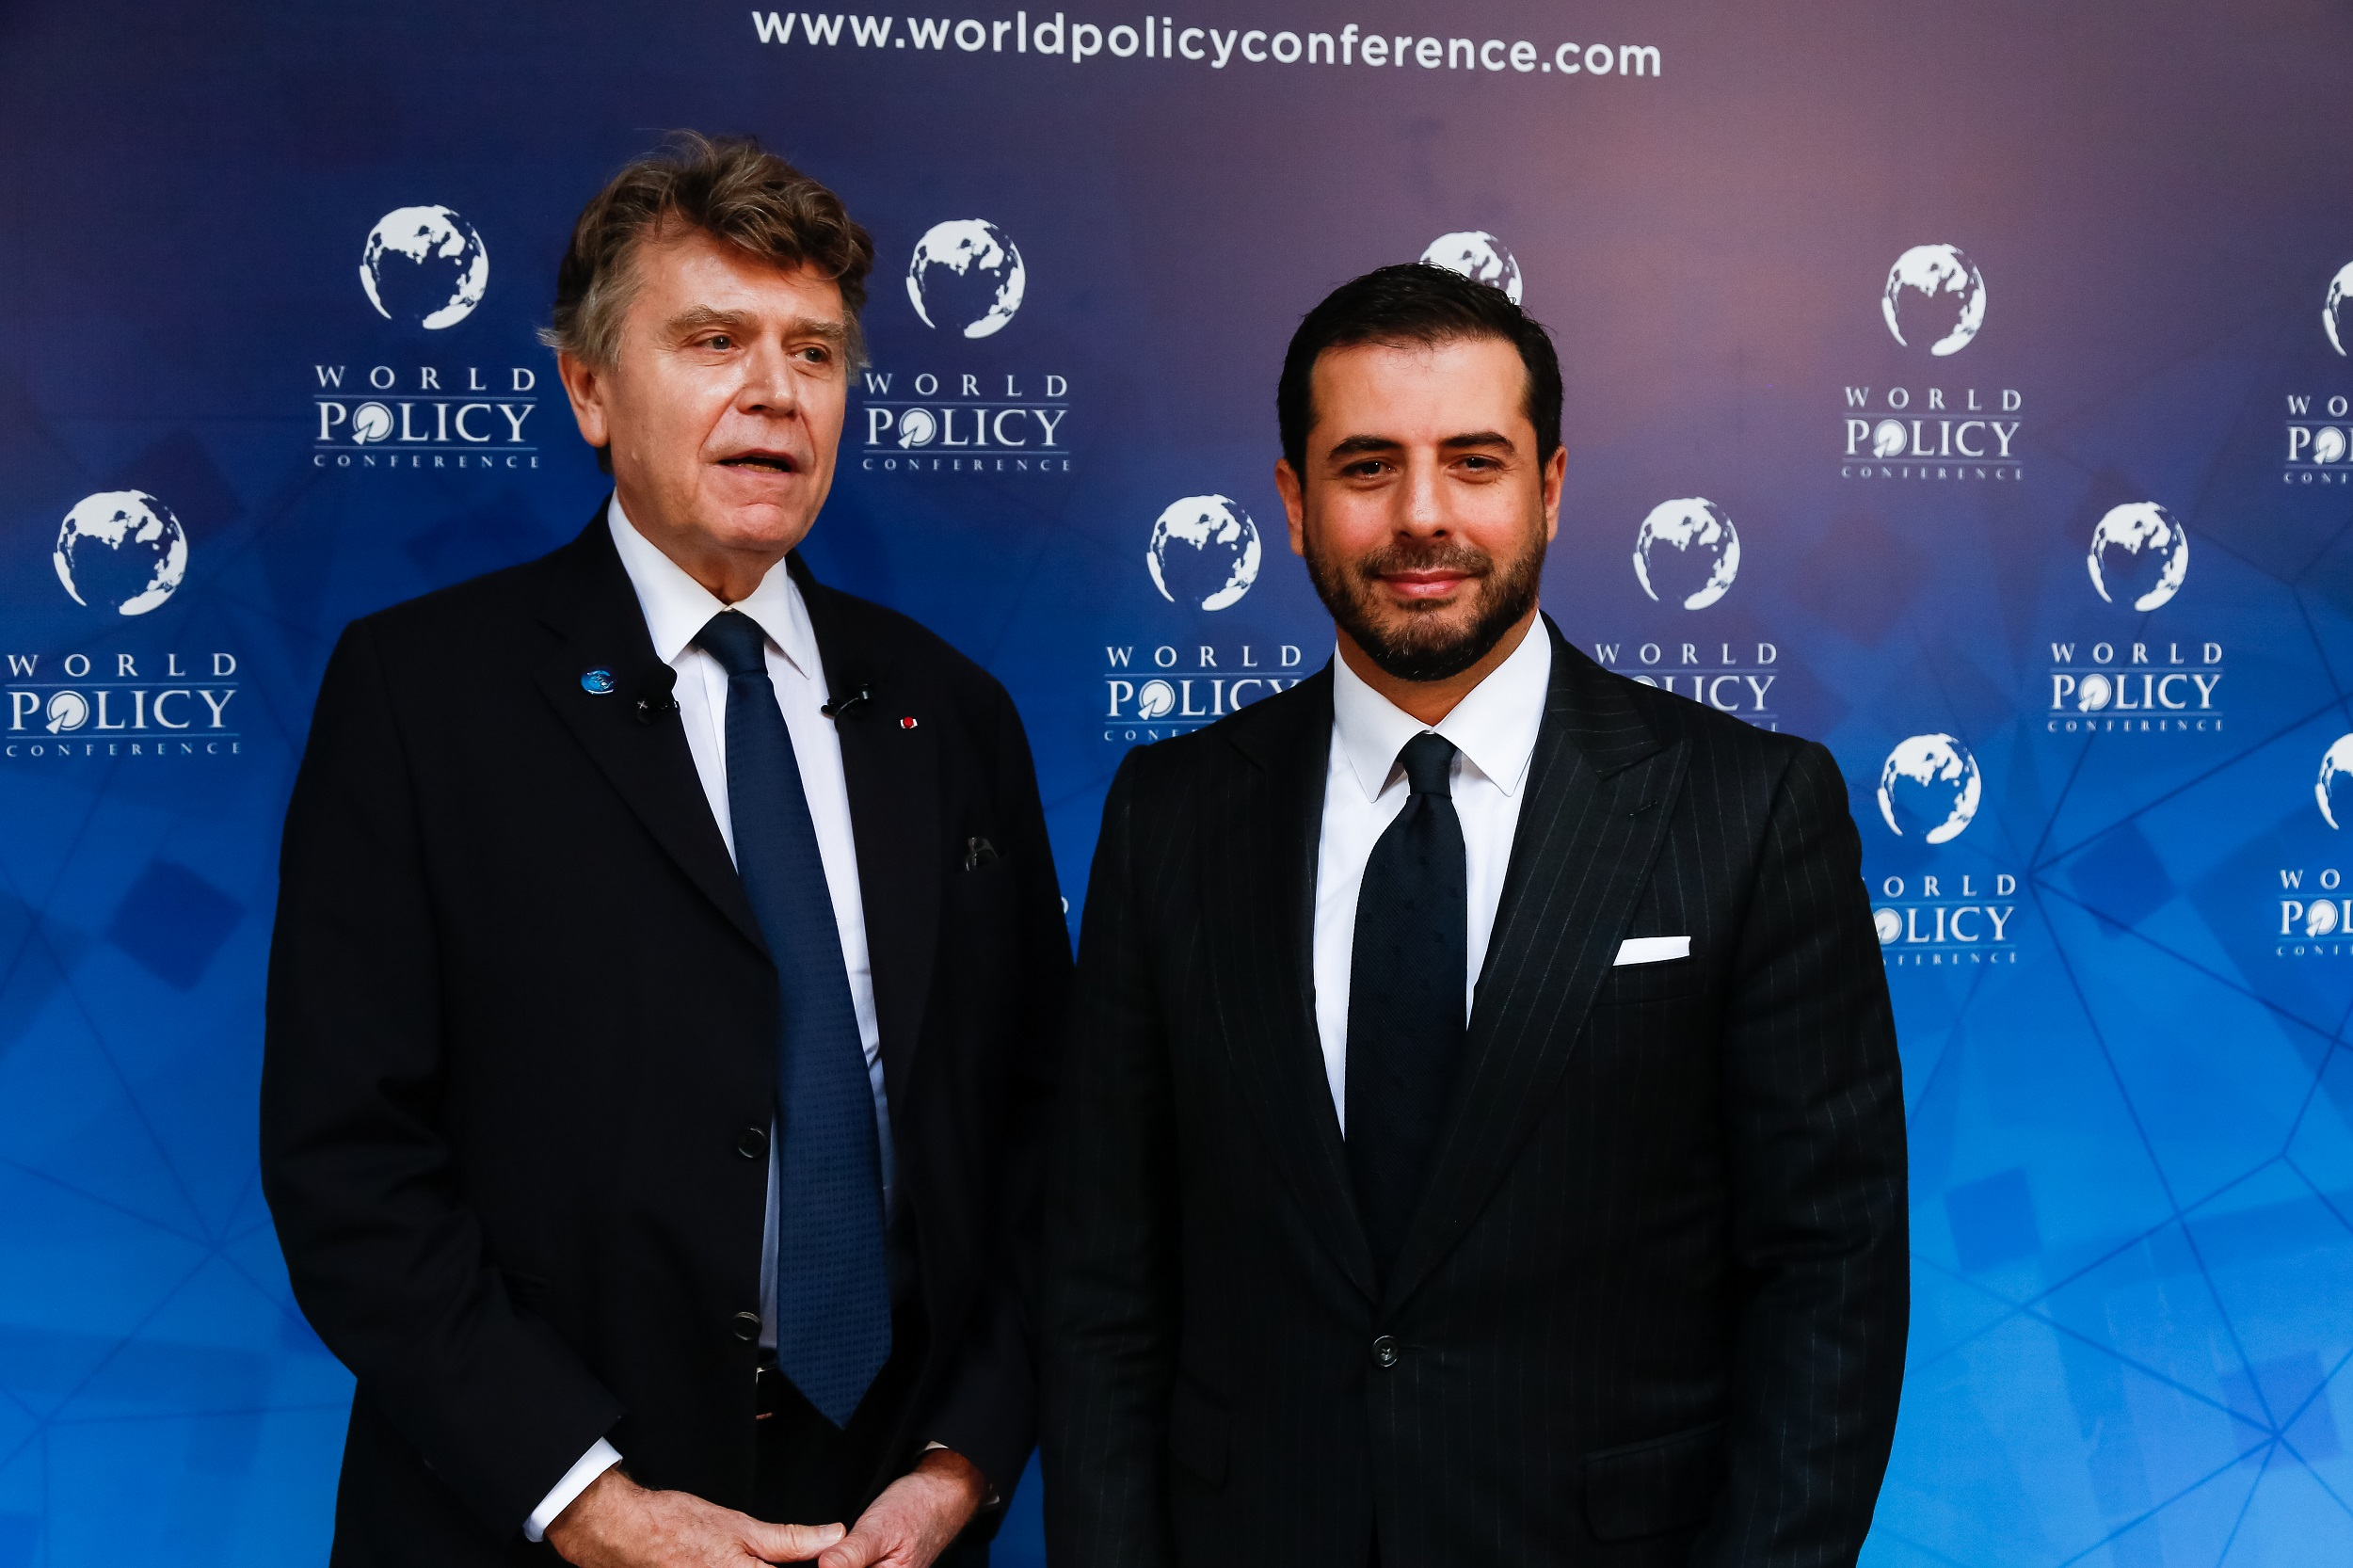 World Policy Conference WPC 2017 Thierry de Montbrial, Yassir Znagui